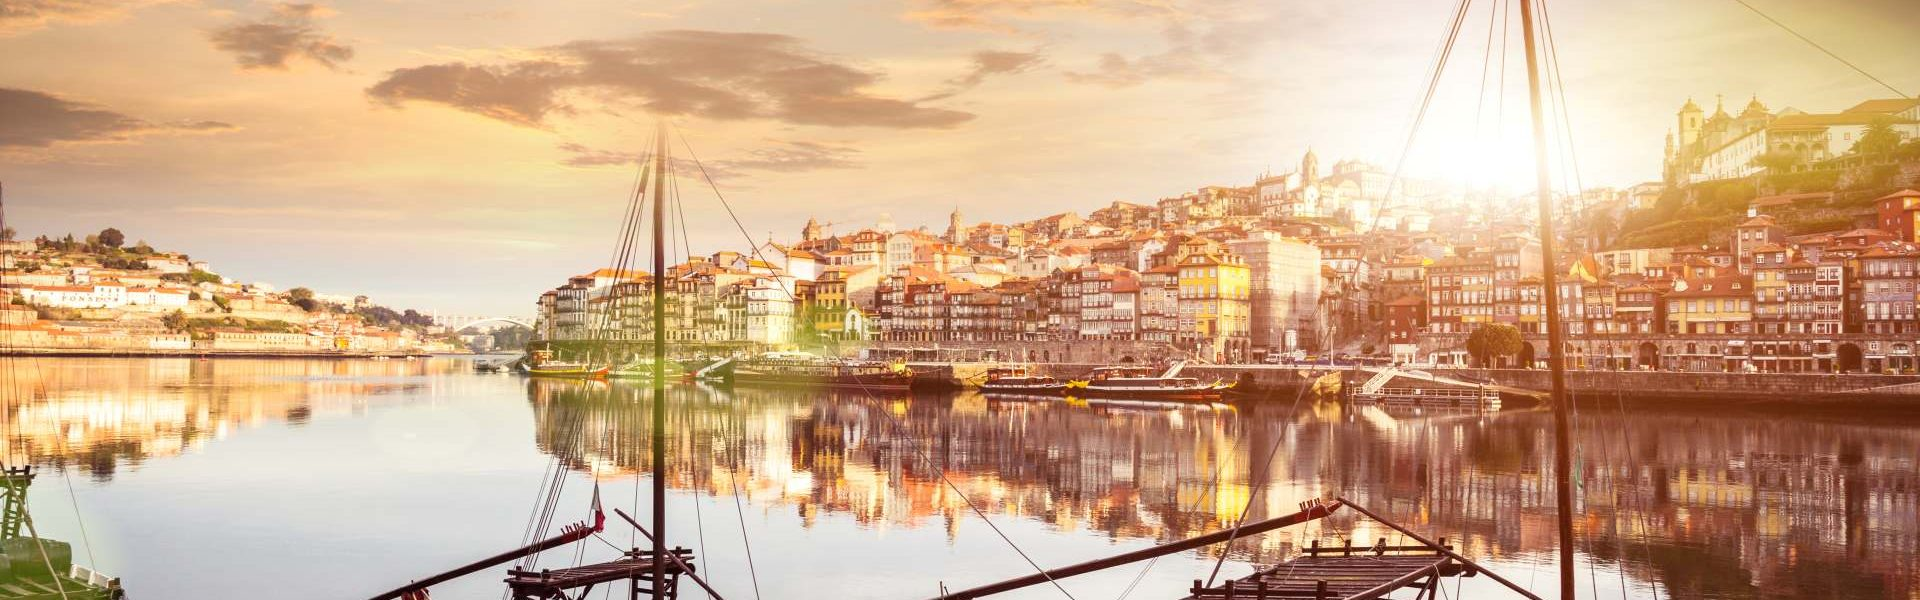 Oporto view from the the Douro river